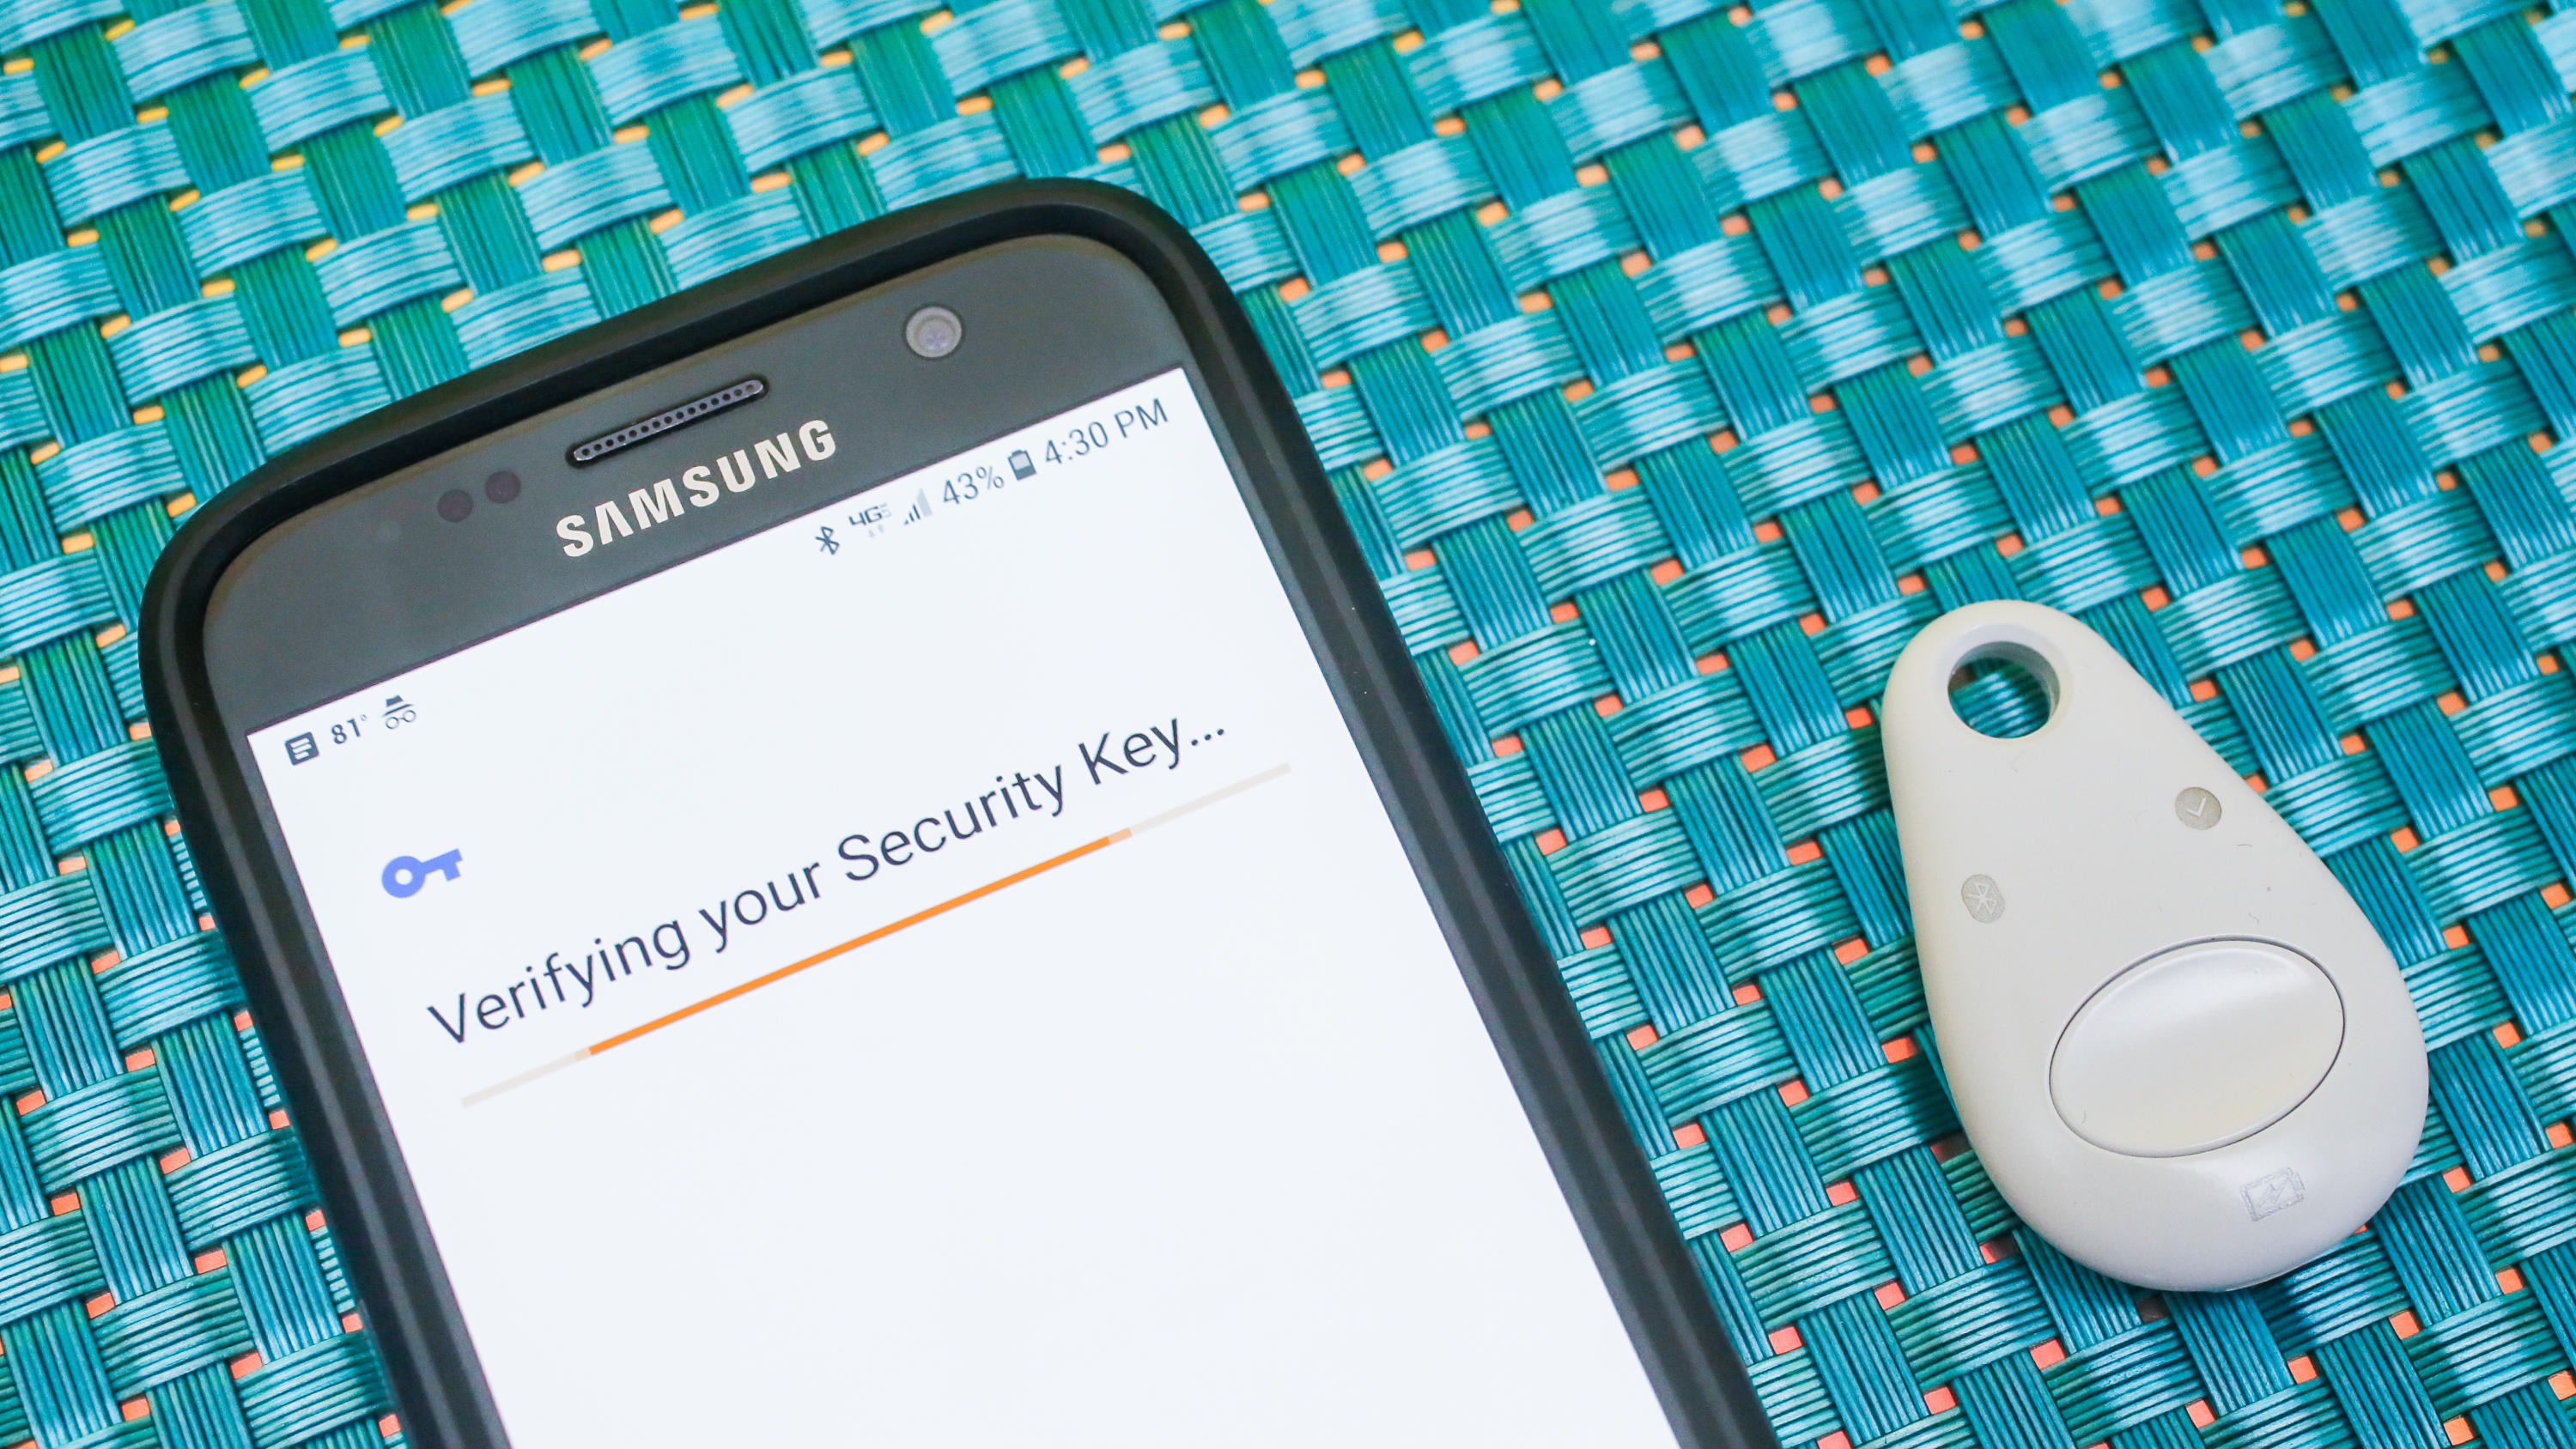 Google is releasing its own security key, called the Titan Security Key. It'll be available by the end of the summer in Google's online store.